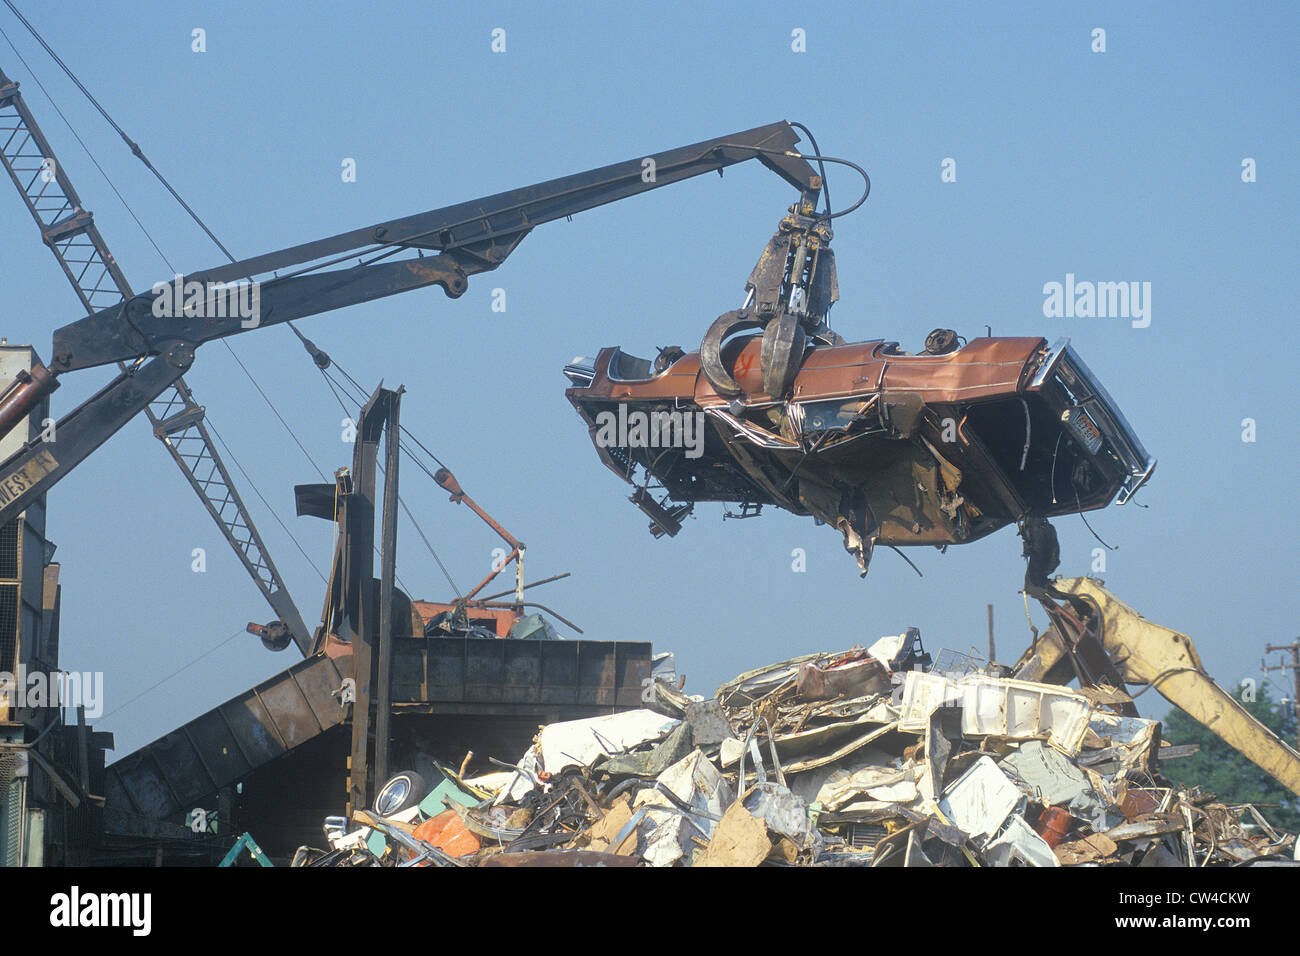 A wrecking crane lowering a demolished automobile onto a pile of junk, Atlanta, Georgia - Stock Image